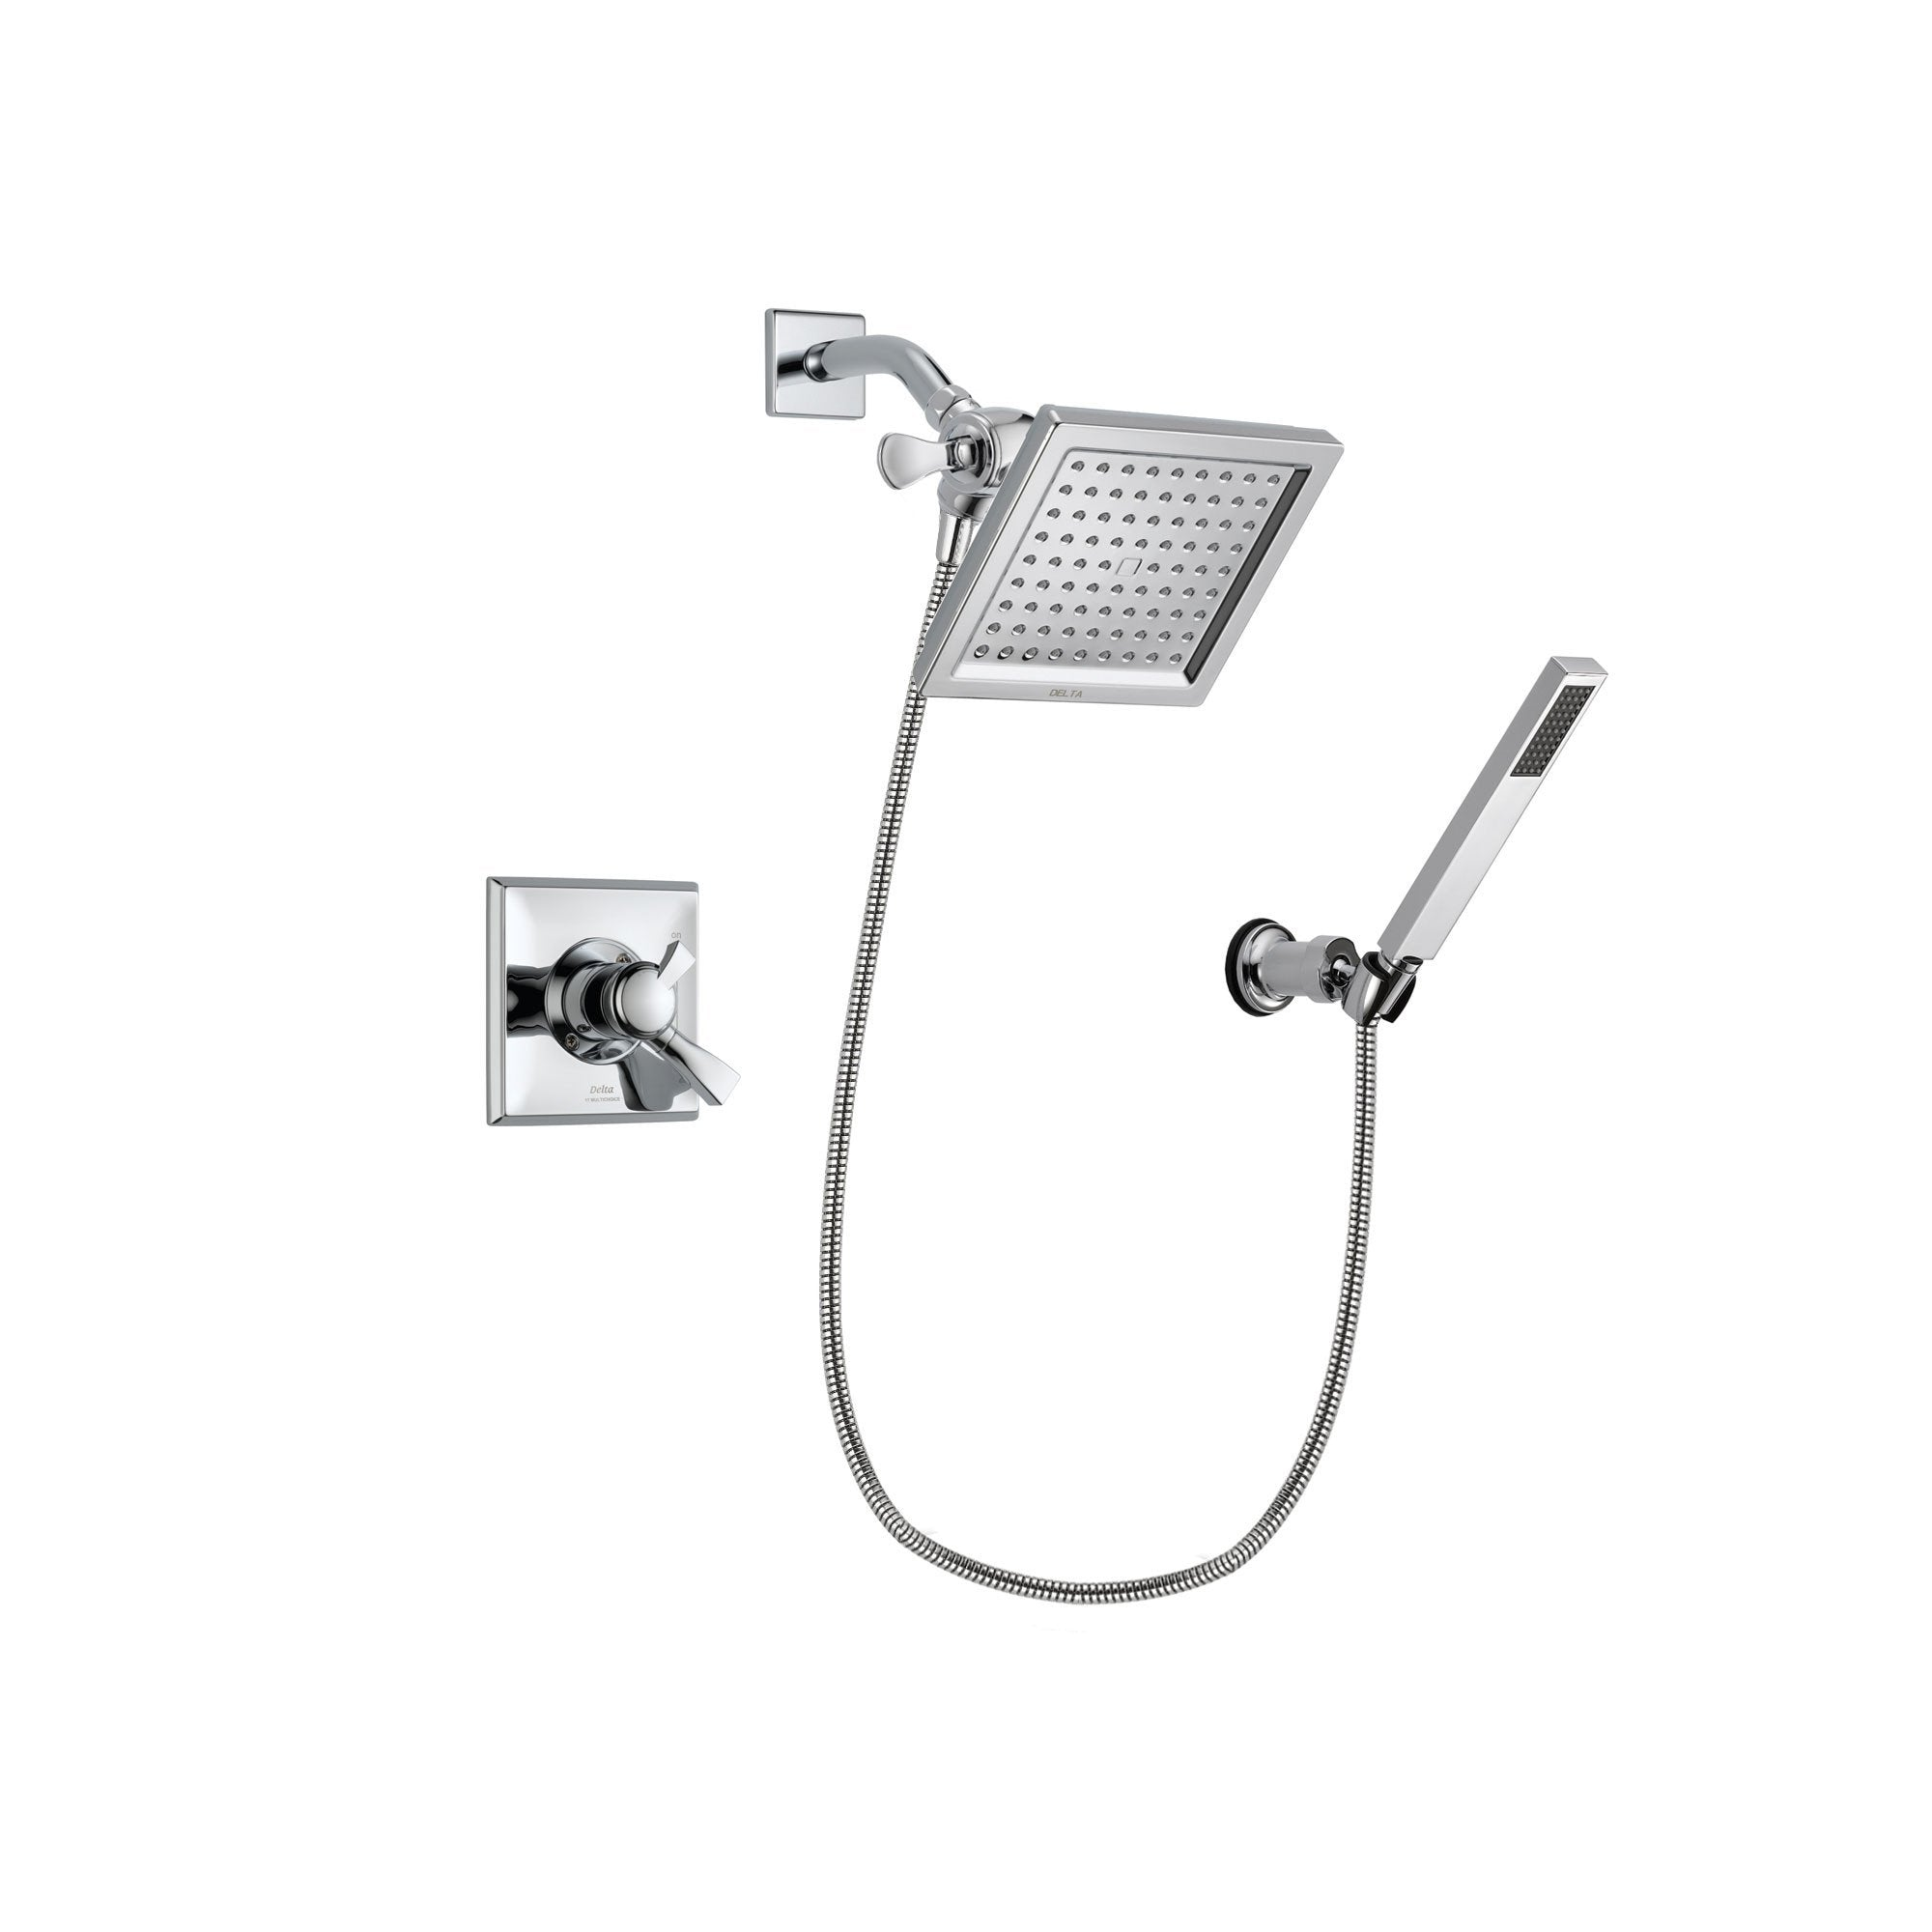 Delta Dryden Chrome Shower Faucet System w/ Shower Head and Hand Shower DSP0126V